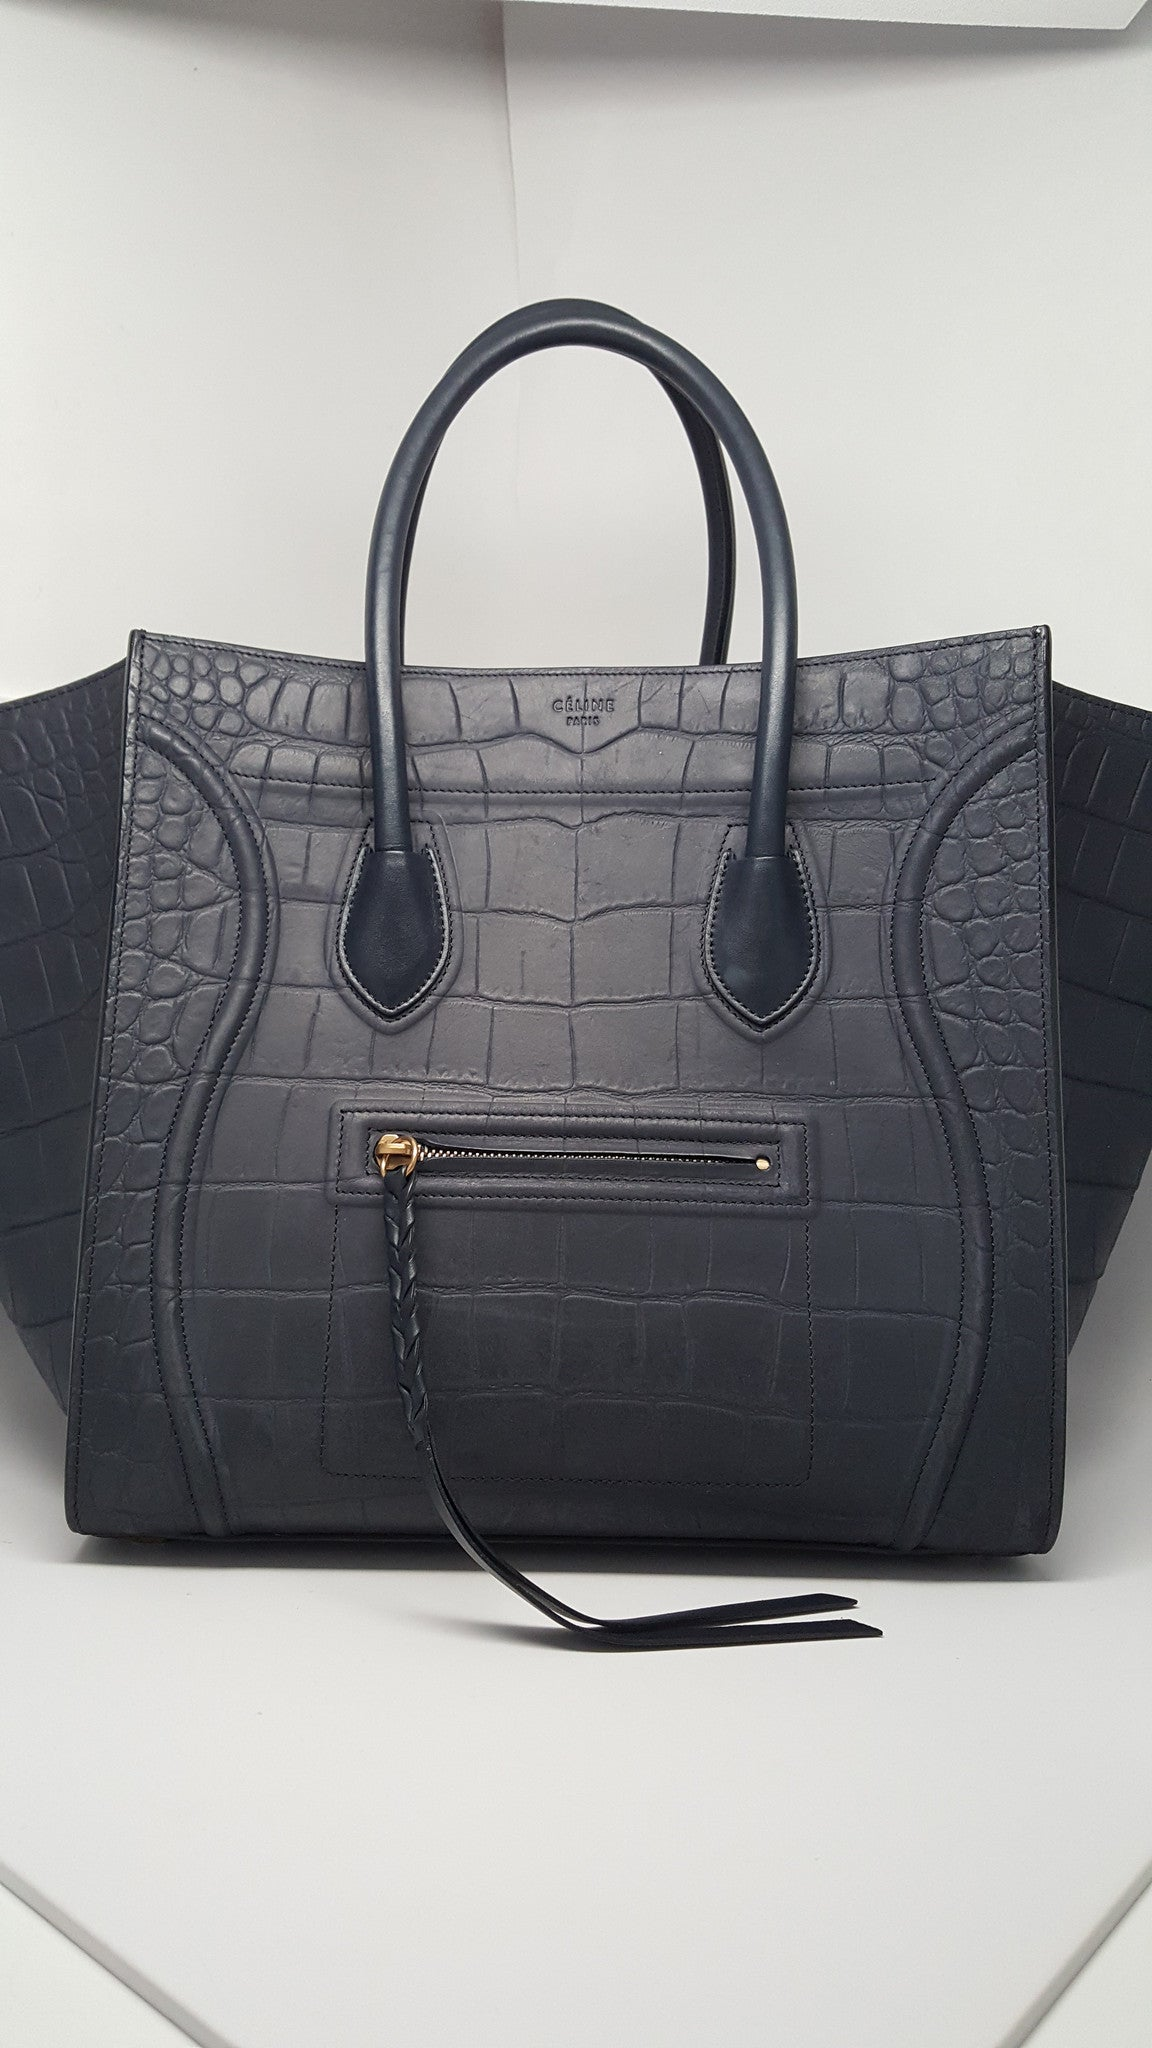 CELINE NAVY BLUE STAMPED CROC MEDIUM LUGGAGE PHANTOM BAG – Hebster Boutique 279194f0019f3